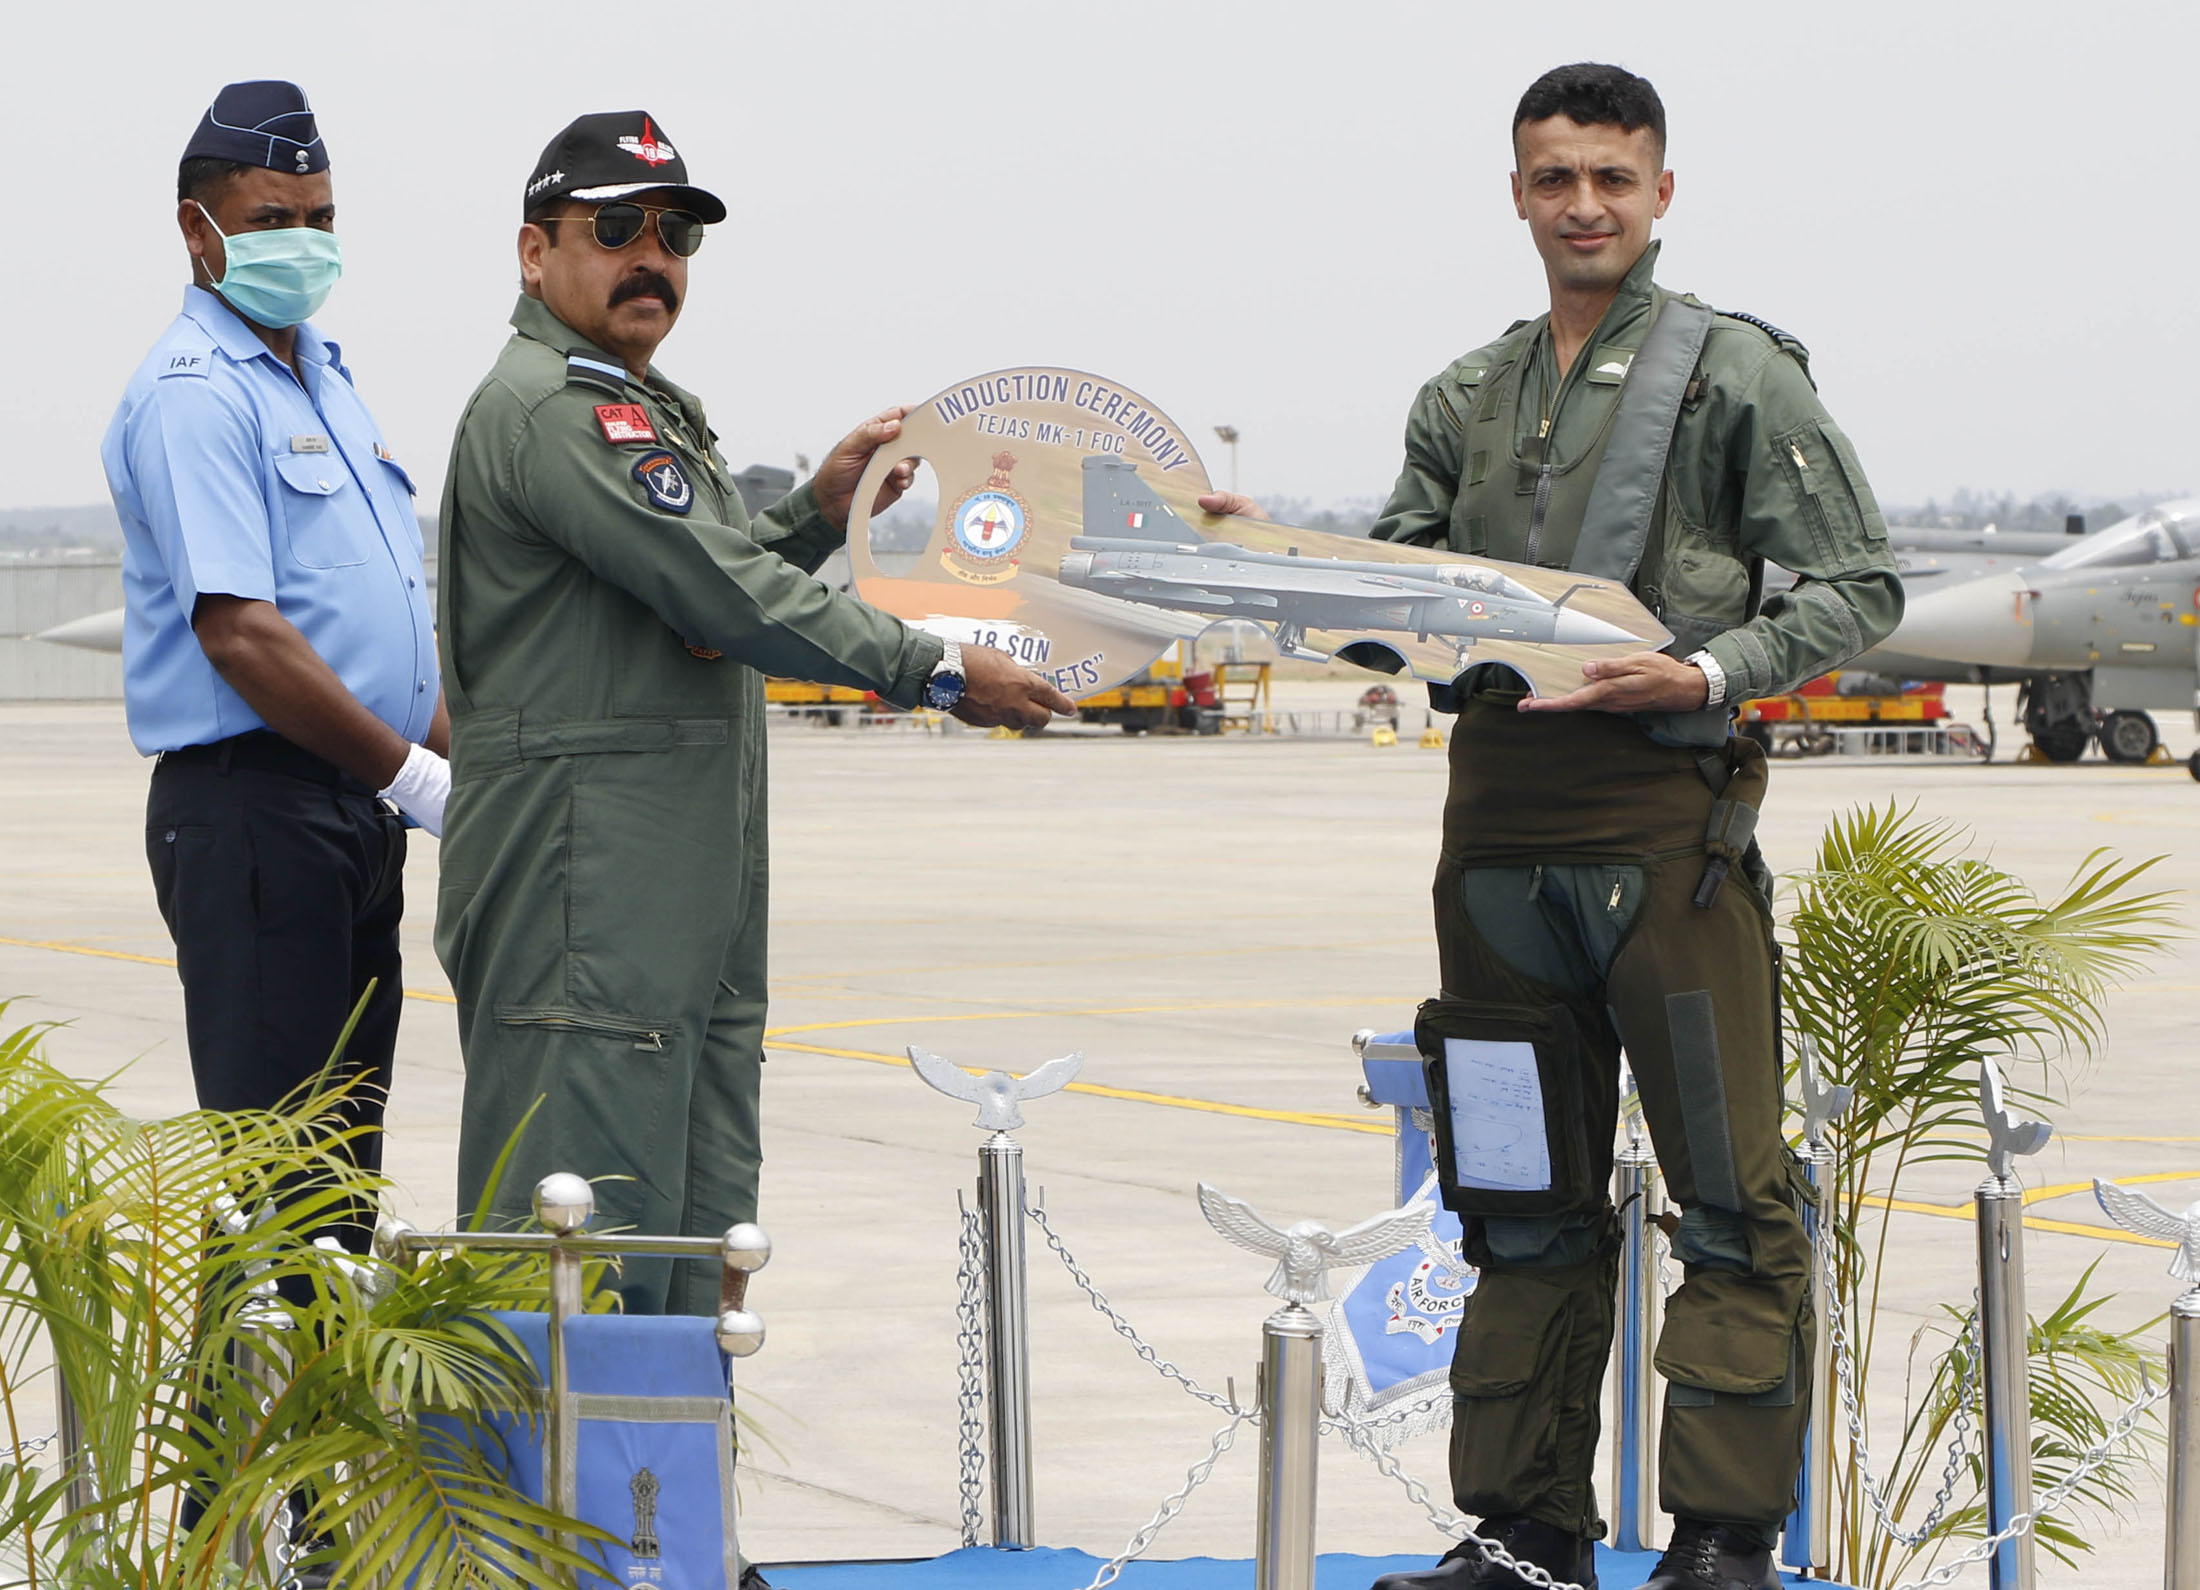 The Chief of the Air Staff, Air Chief Marshal R.K.S. Bhadauria handing over the ceremonial keys of the unit to the Commanding Officer of 18 Squadron Group Captain Manish Tolani, during the induction ceremony, at Air Force Station Sulur, in Tamil Nadu on May 27, 2020.